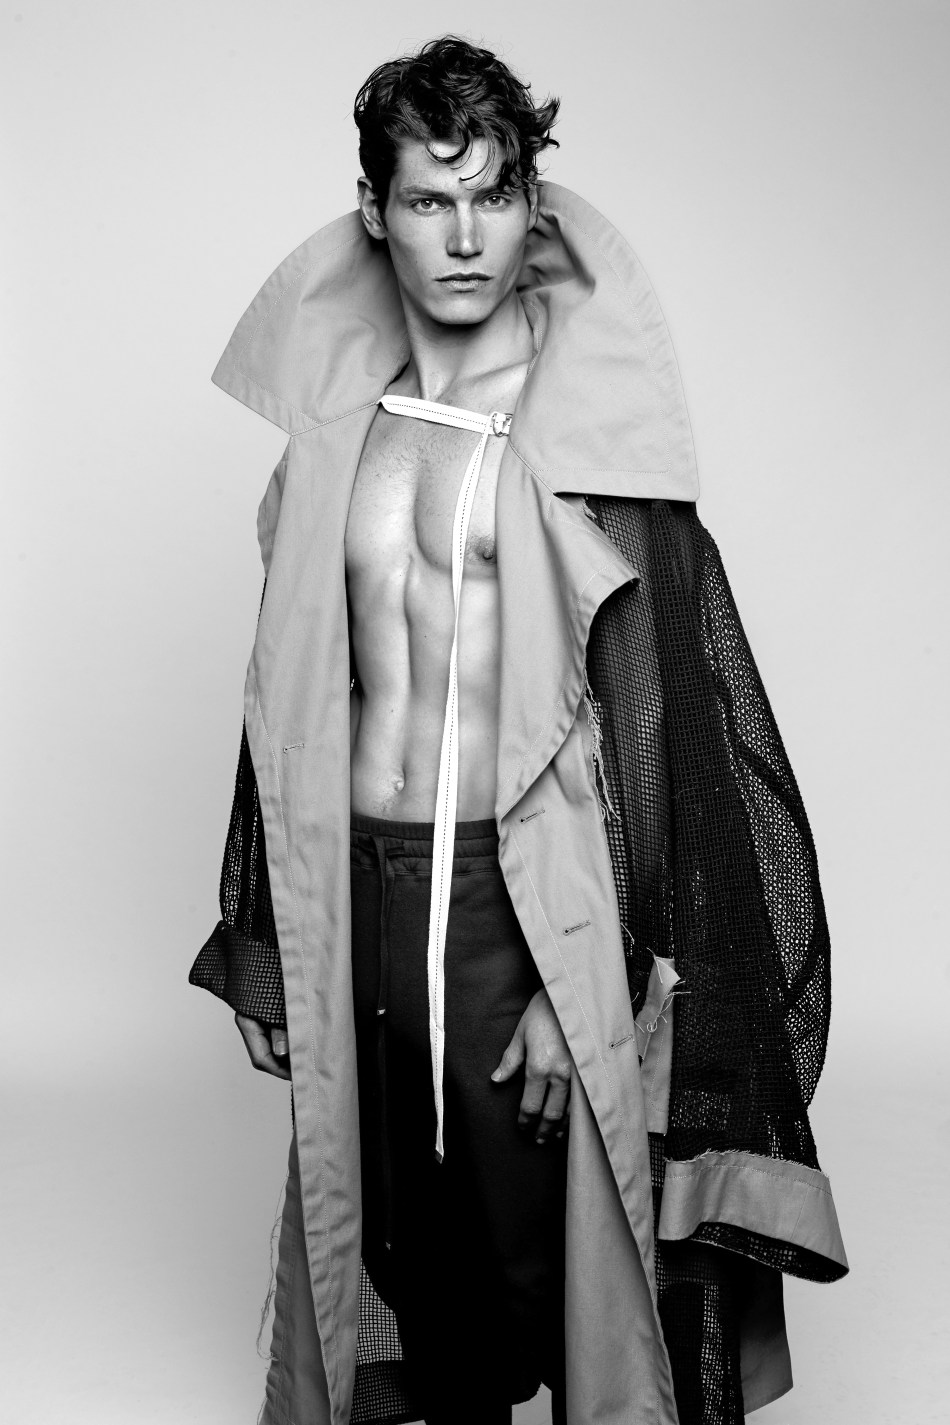 Model & Singer Sam Way in fashionable edit for Essential Homme